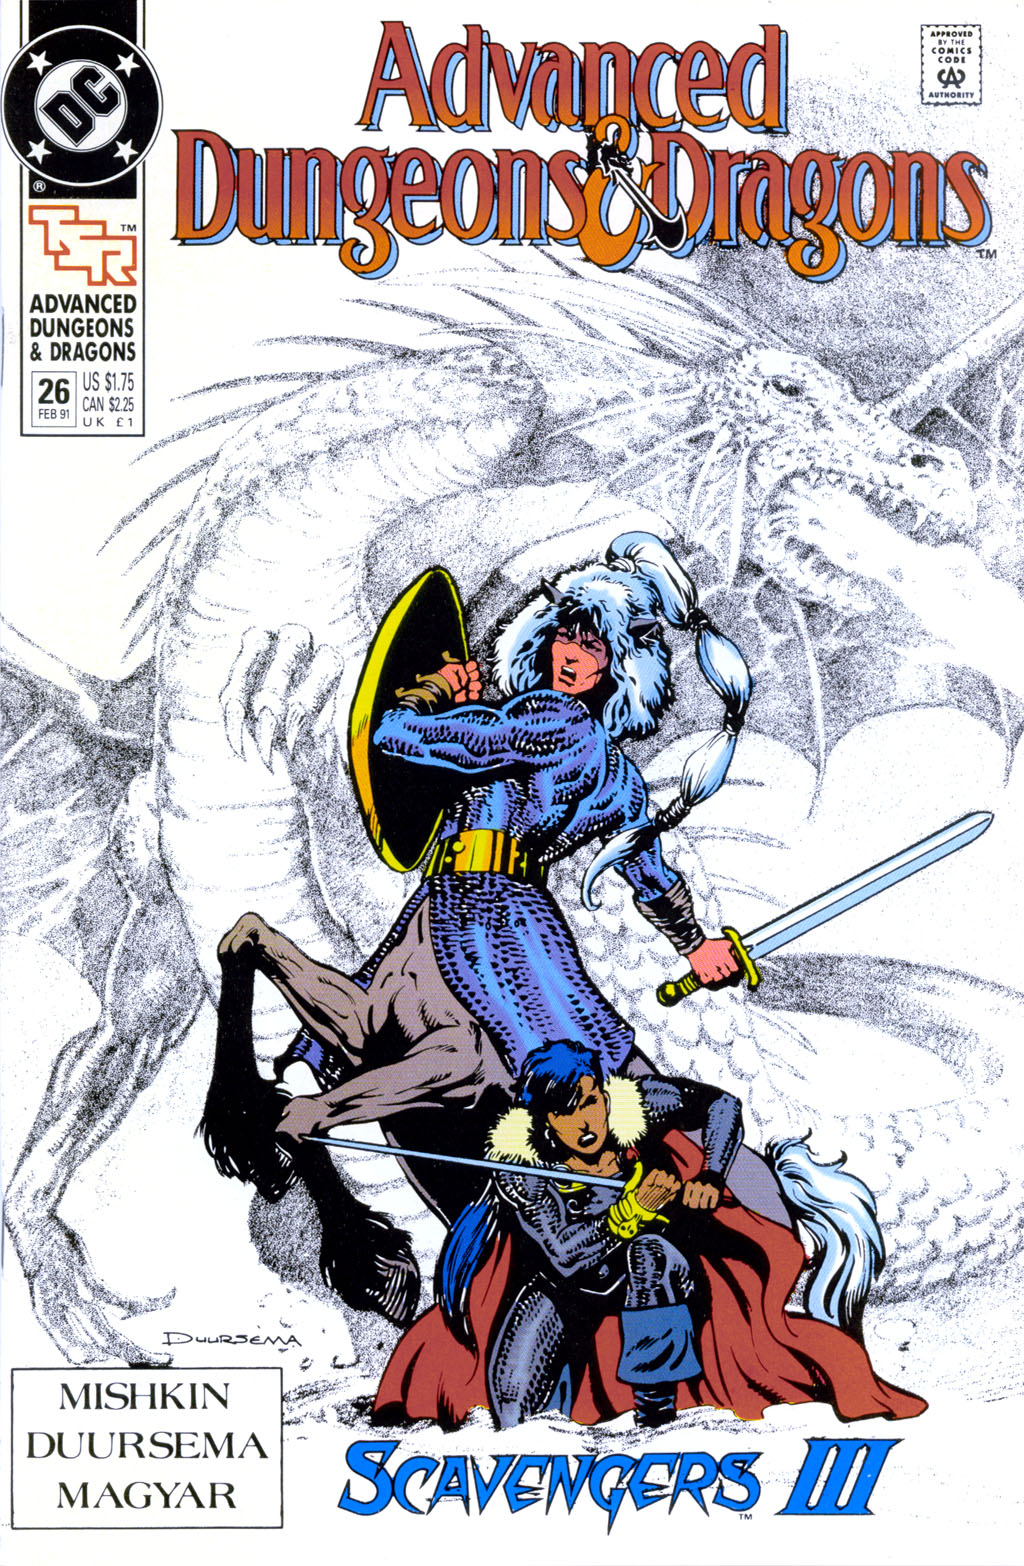 Read online Advanced Dungeons & Dragons comic -  Issue #26 - 1